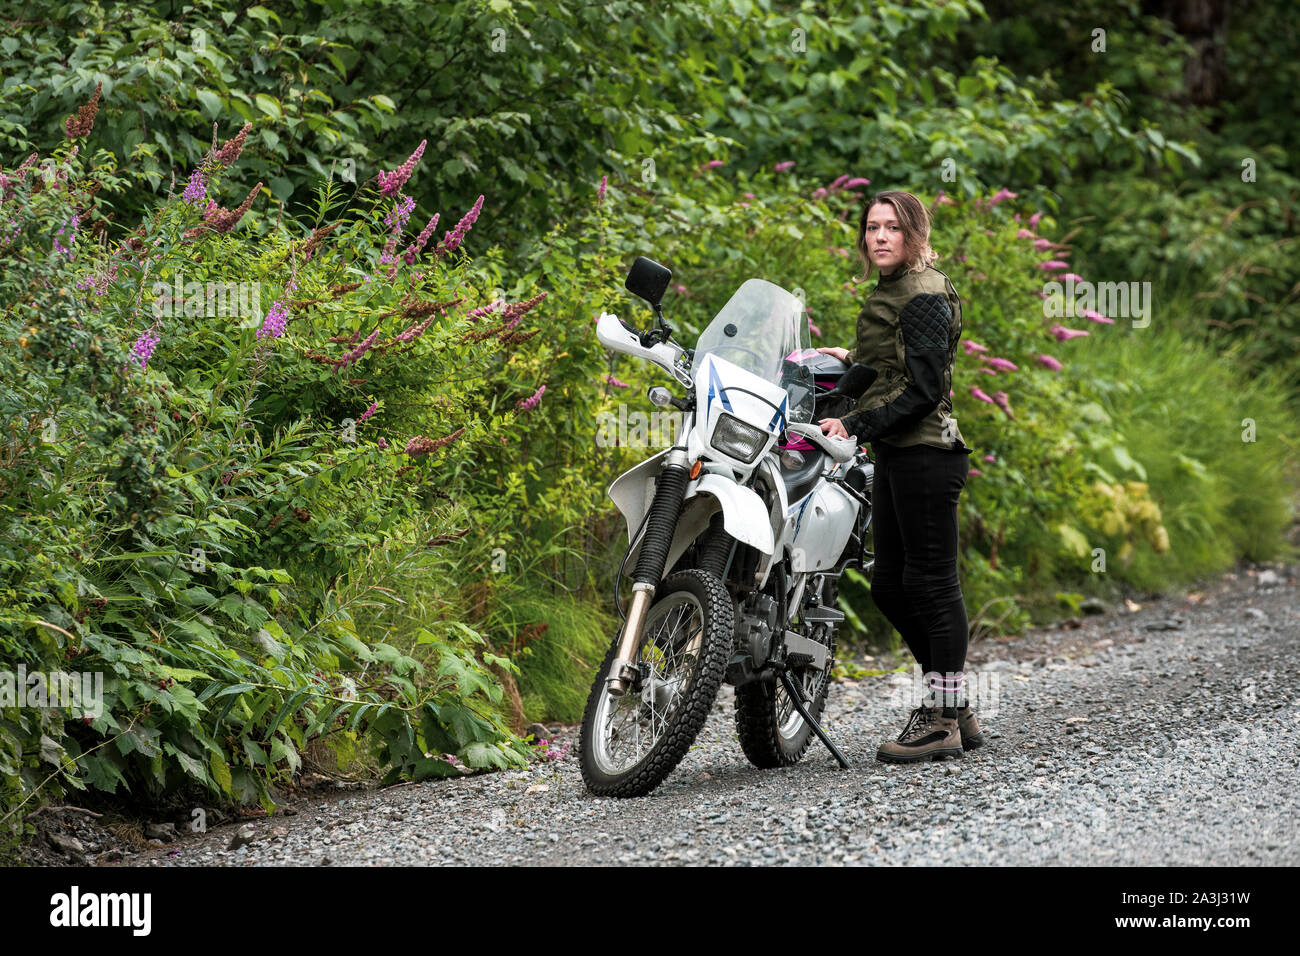 A women takes a break from motorcycle riding and stands with her bike. Stock Photo